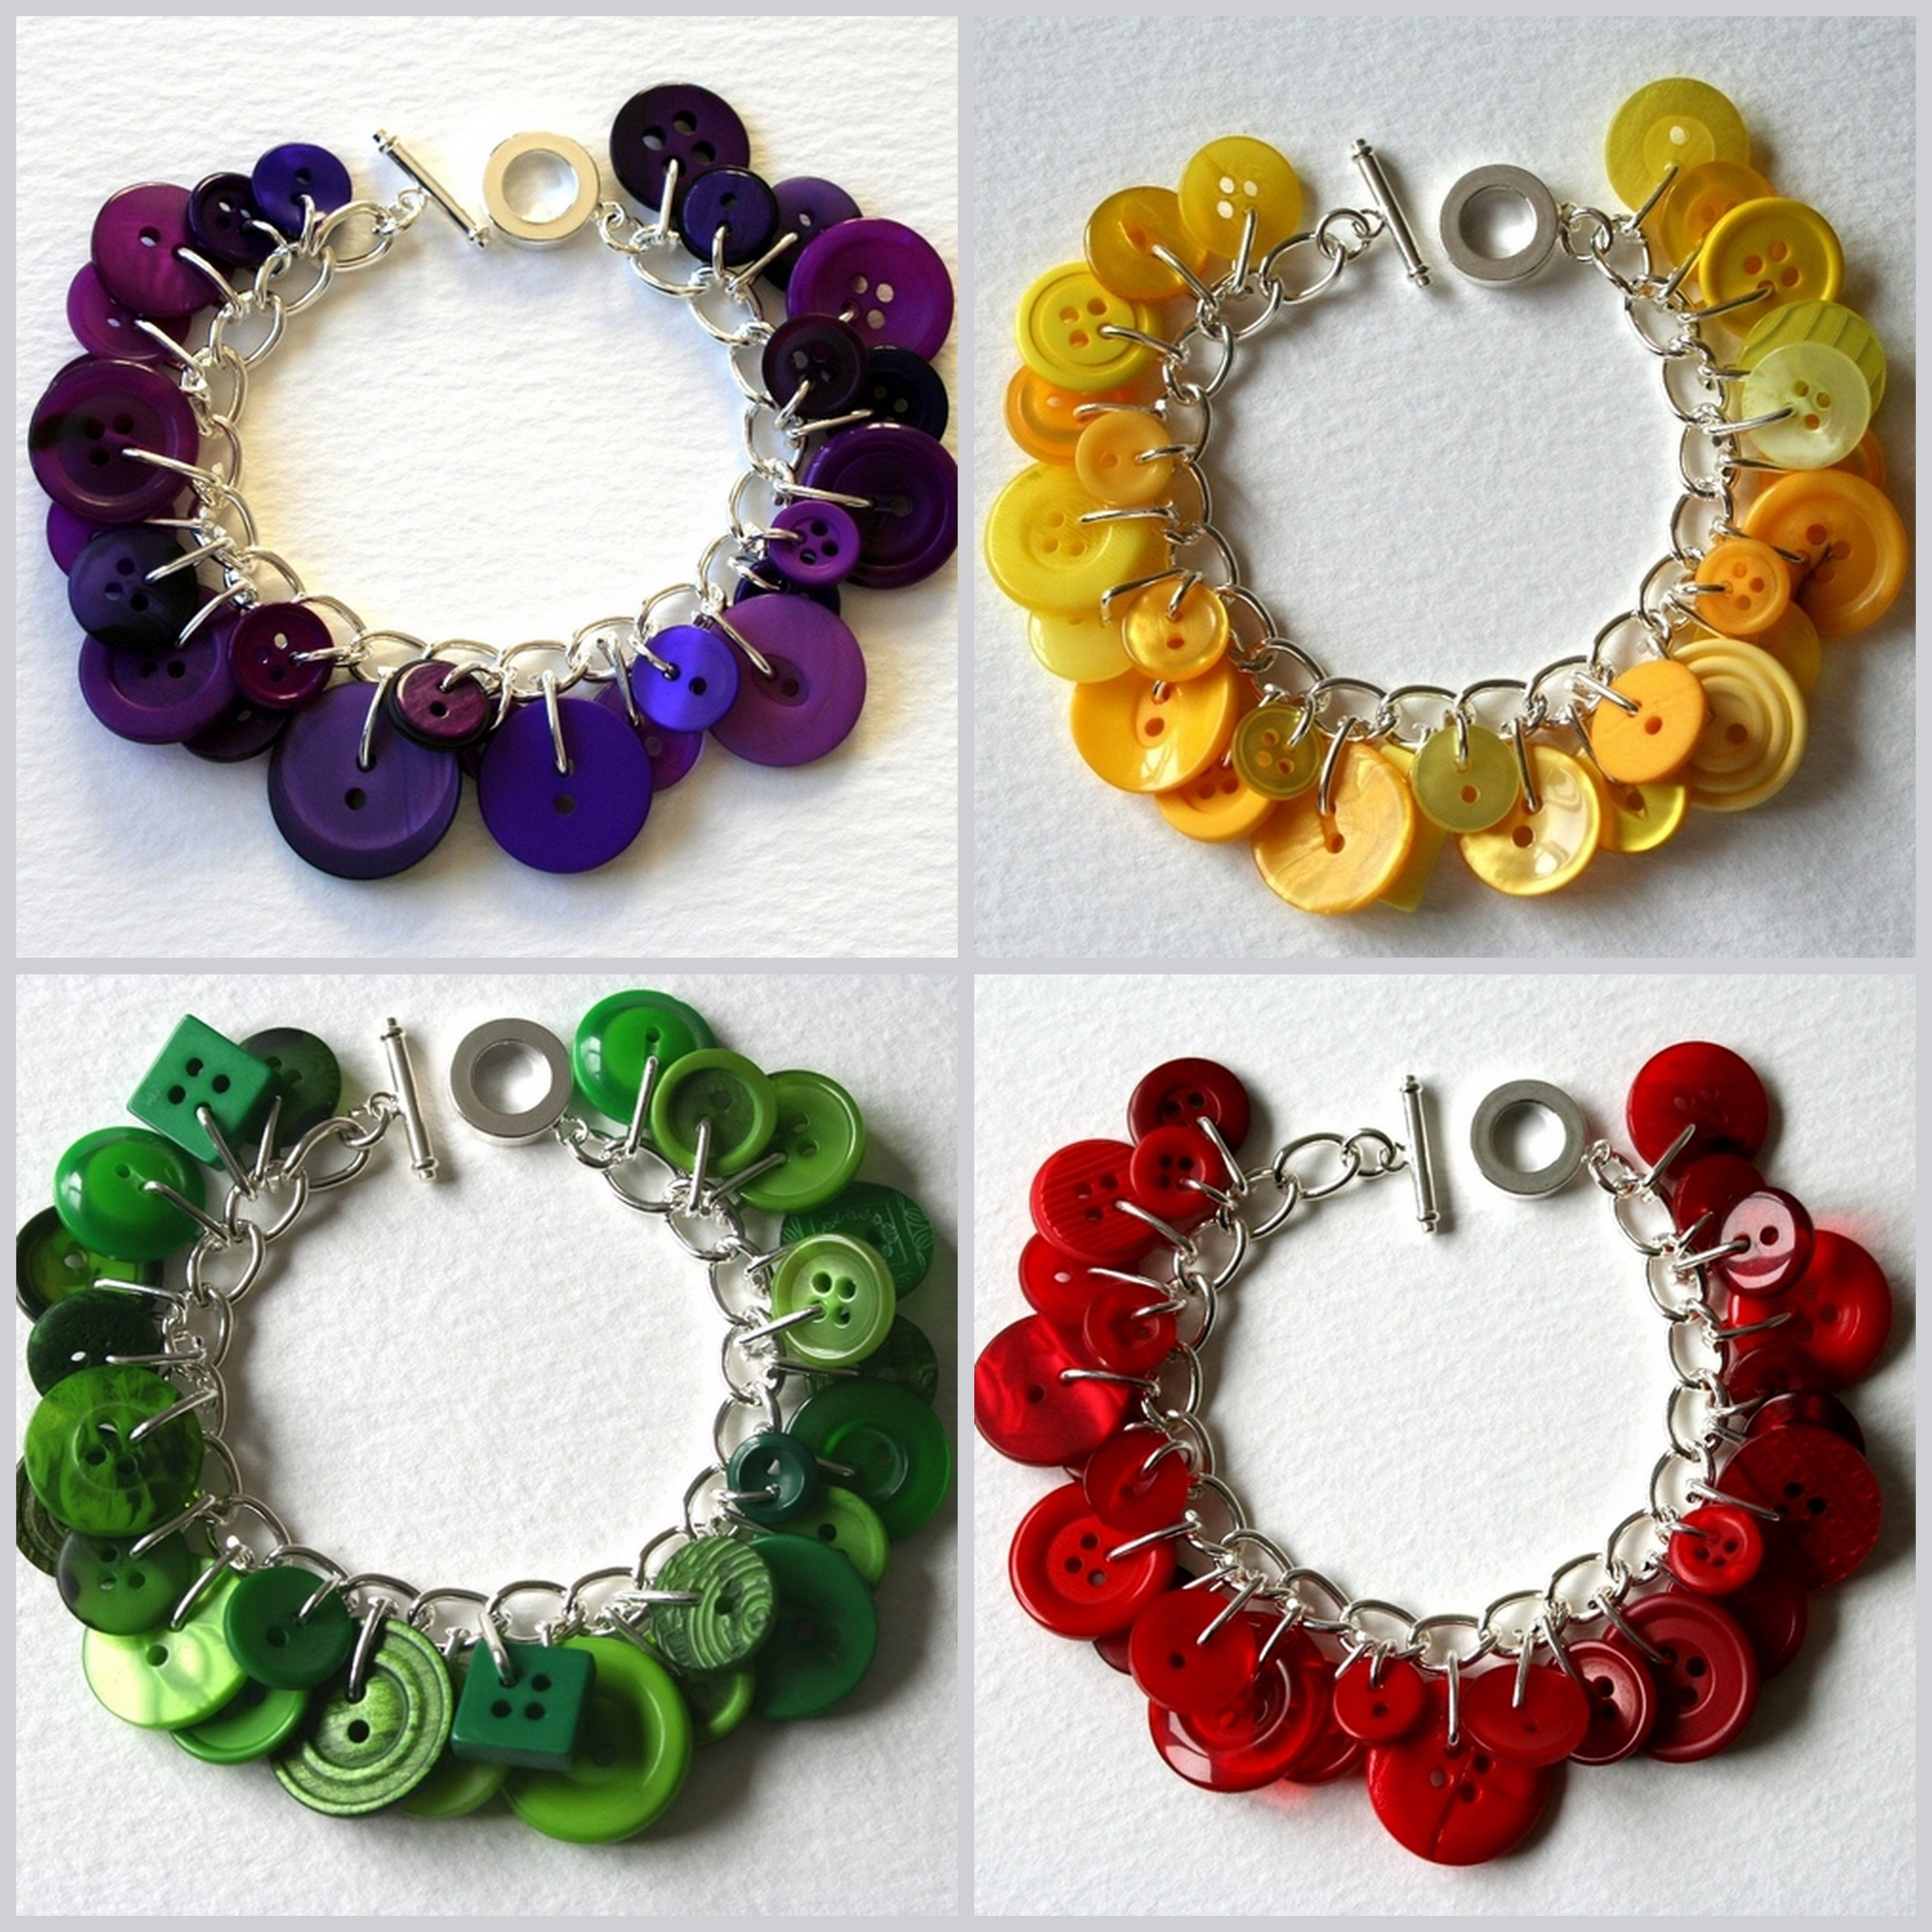 jewelry projects Get diy crafting and jewelry ideas, like how to make earrings, necklaces, and bracelets.